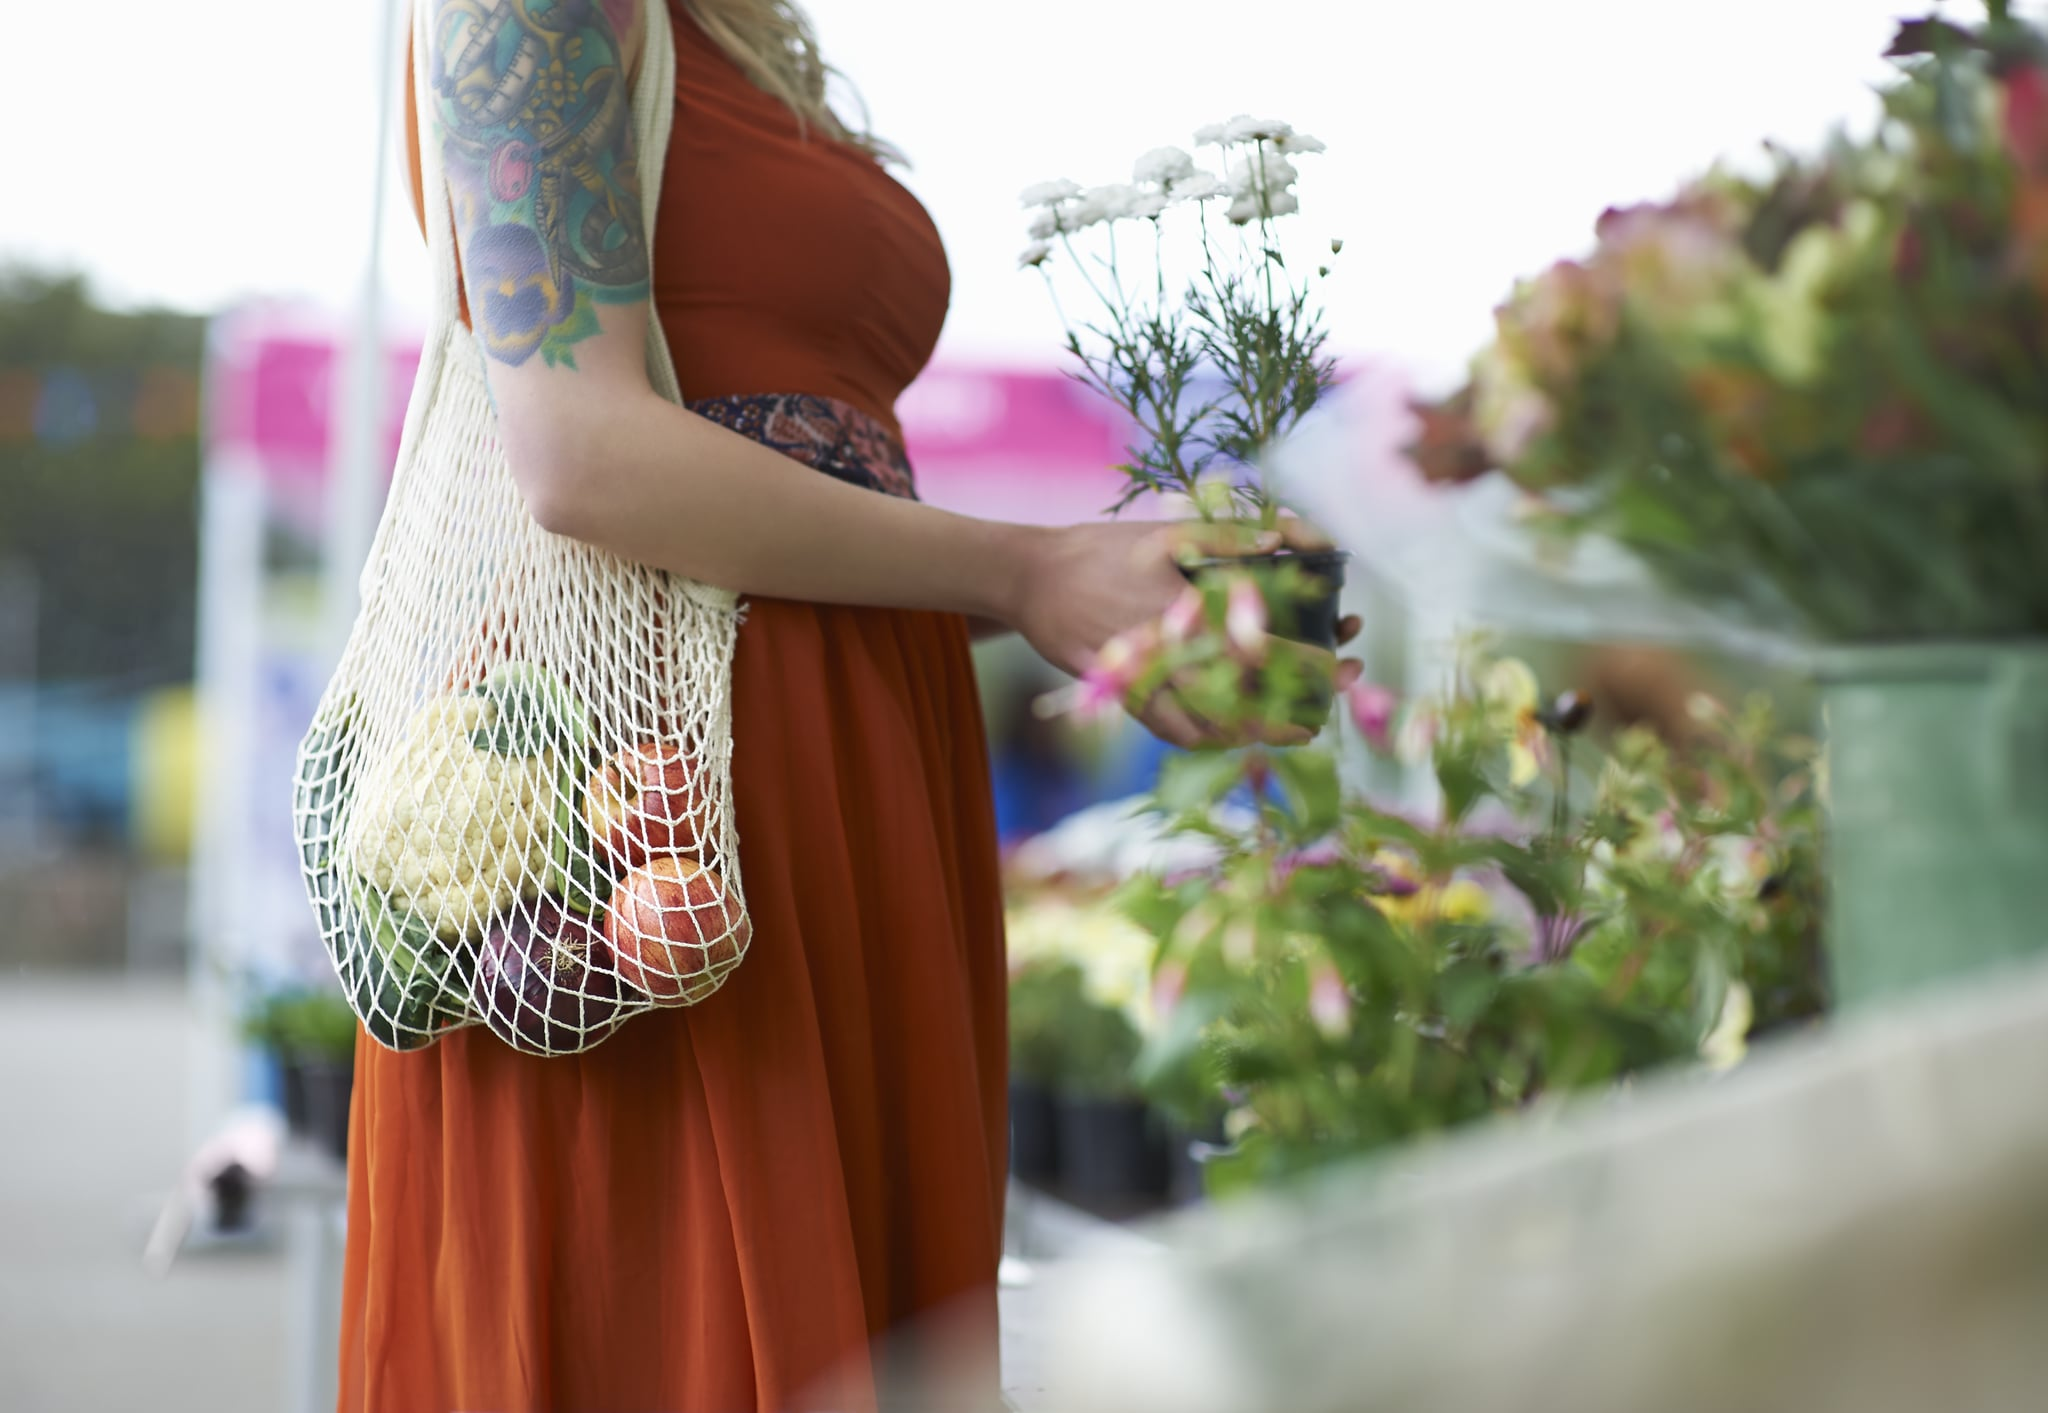 A woman with tattoos shopping on a local market picks up a potted flower plant and carries fresh groceries in her plastic free reusable bag.